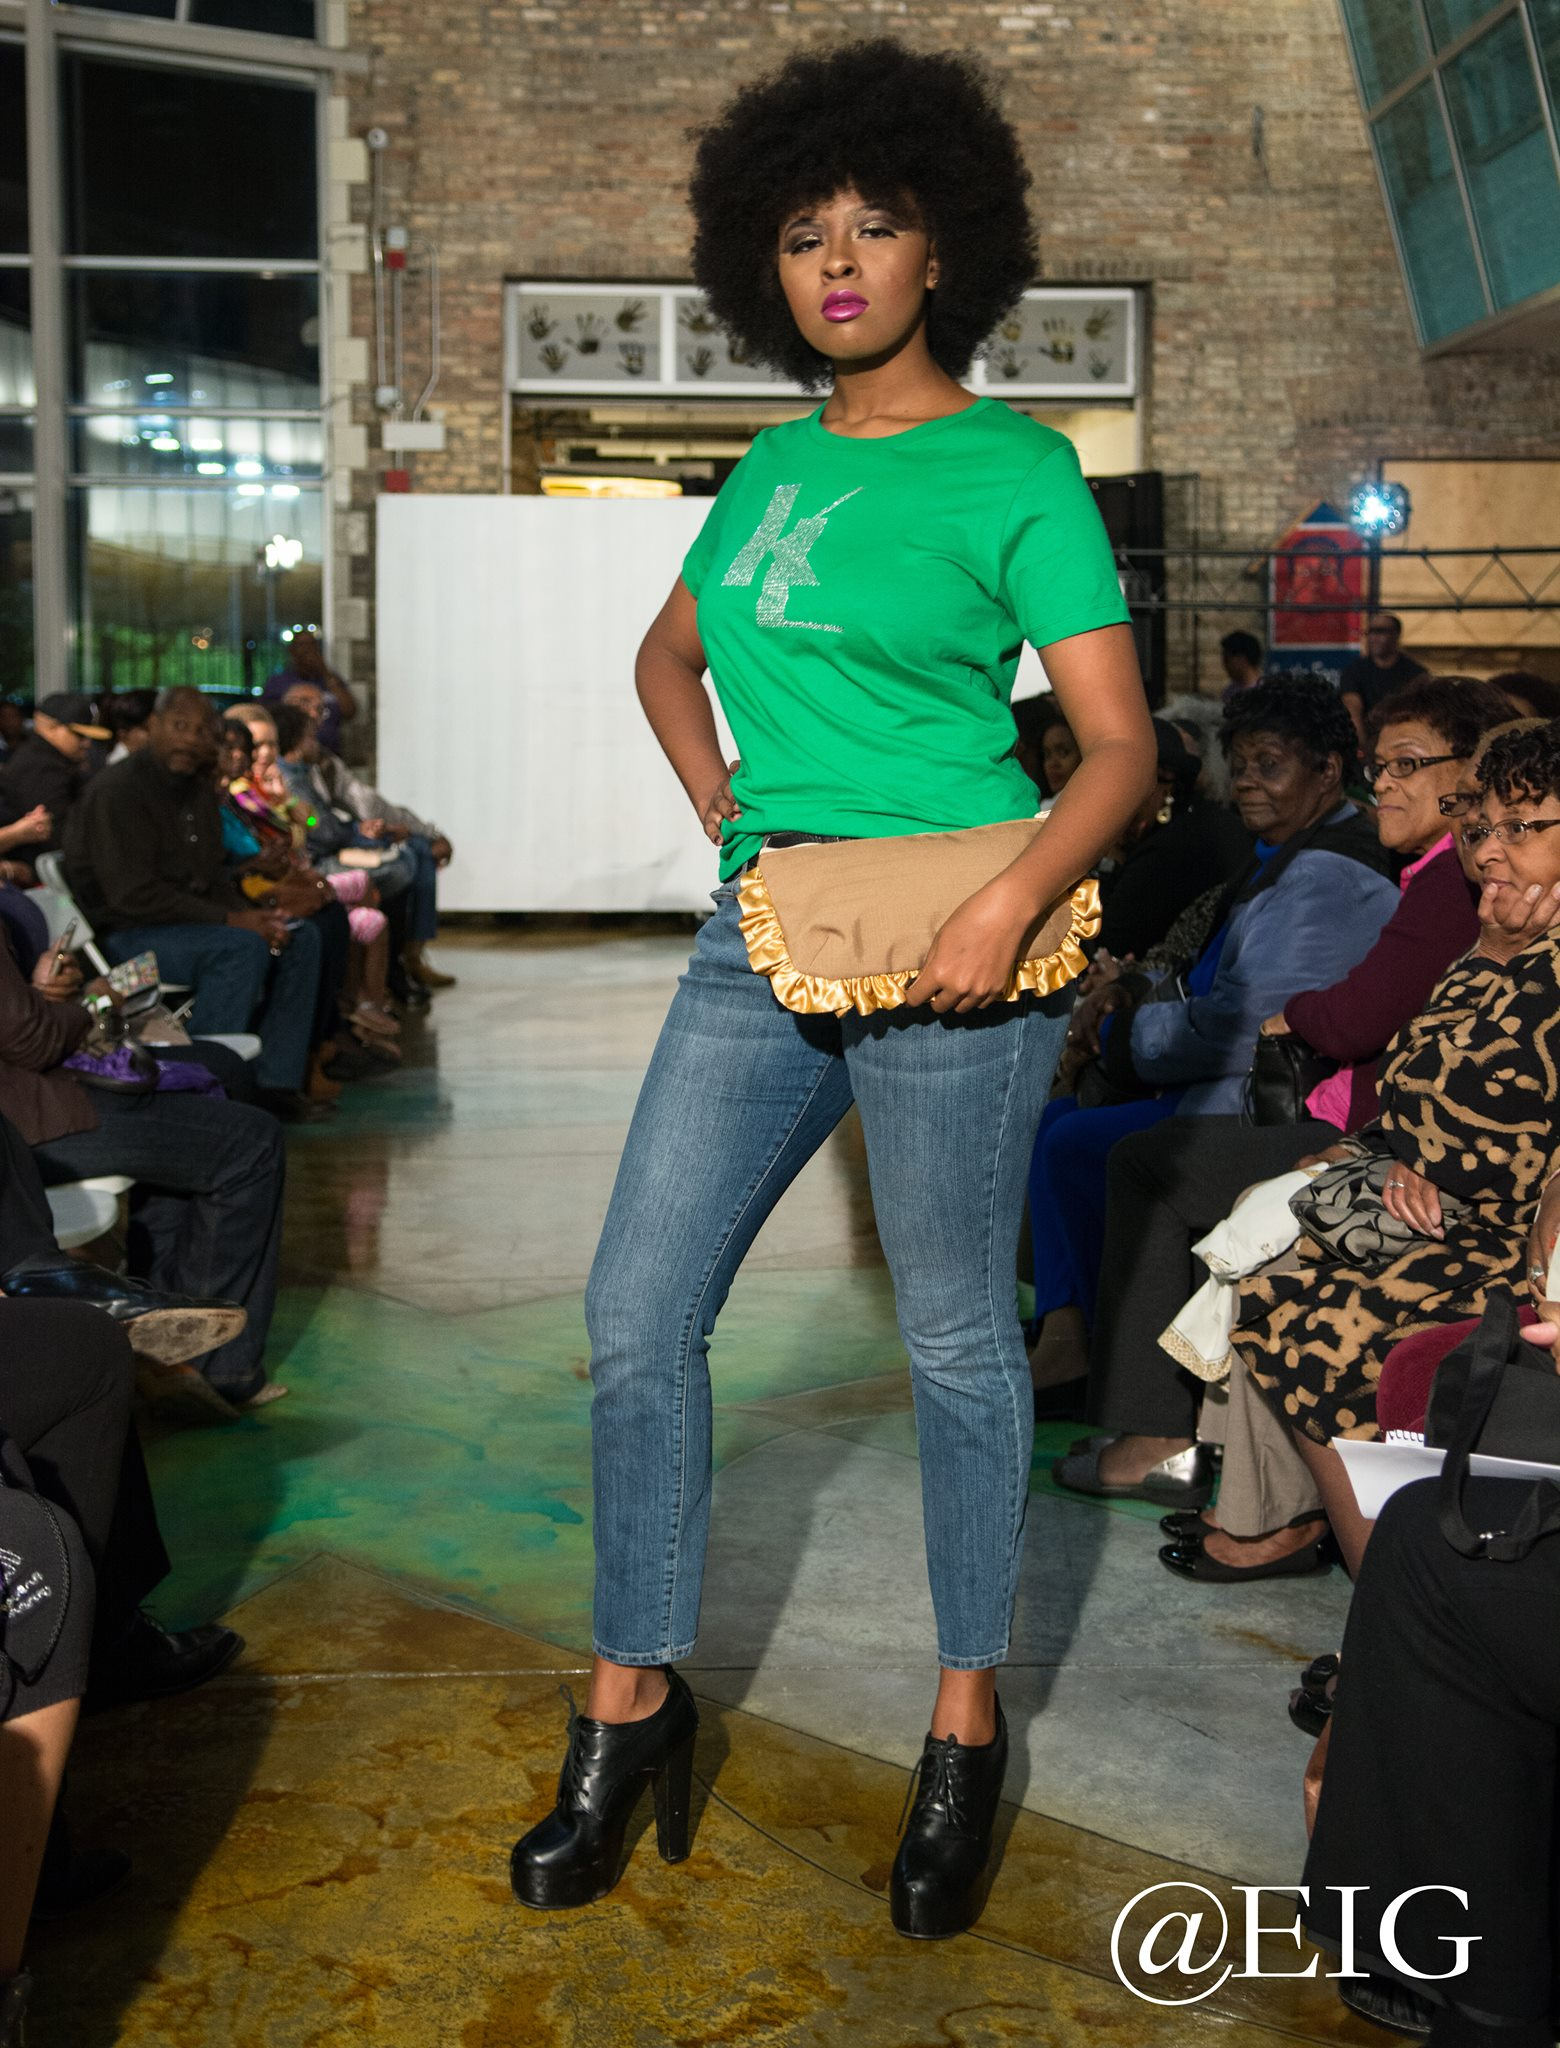 Green Signature T-shirt with Golden Ruffled Clutch